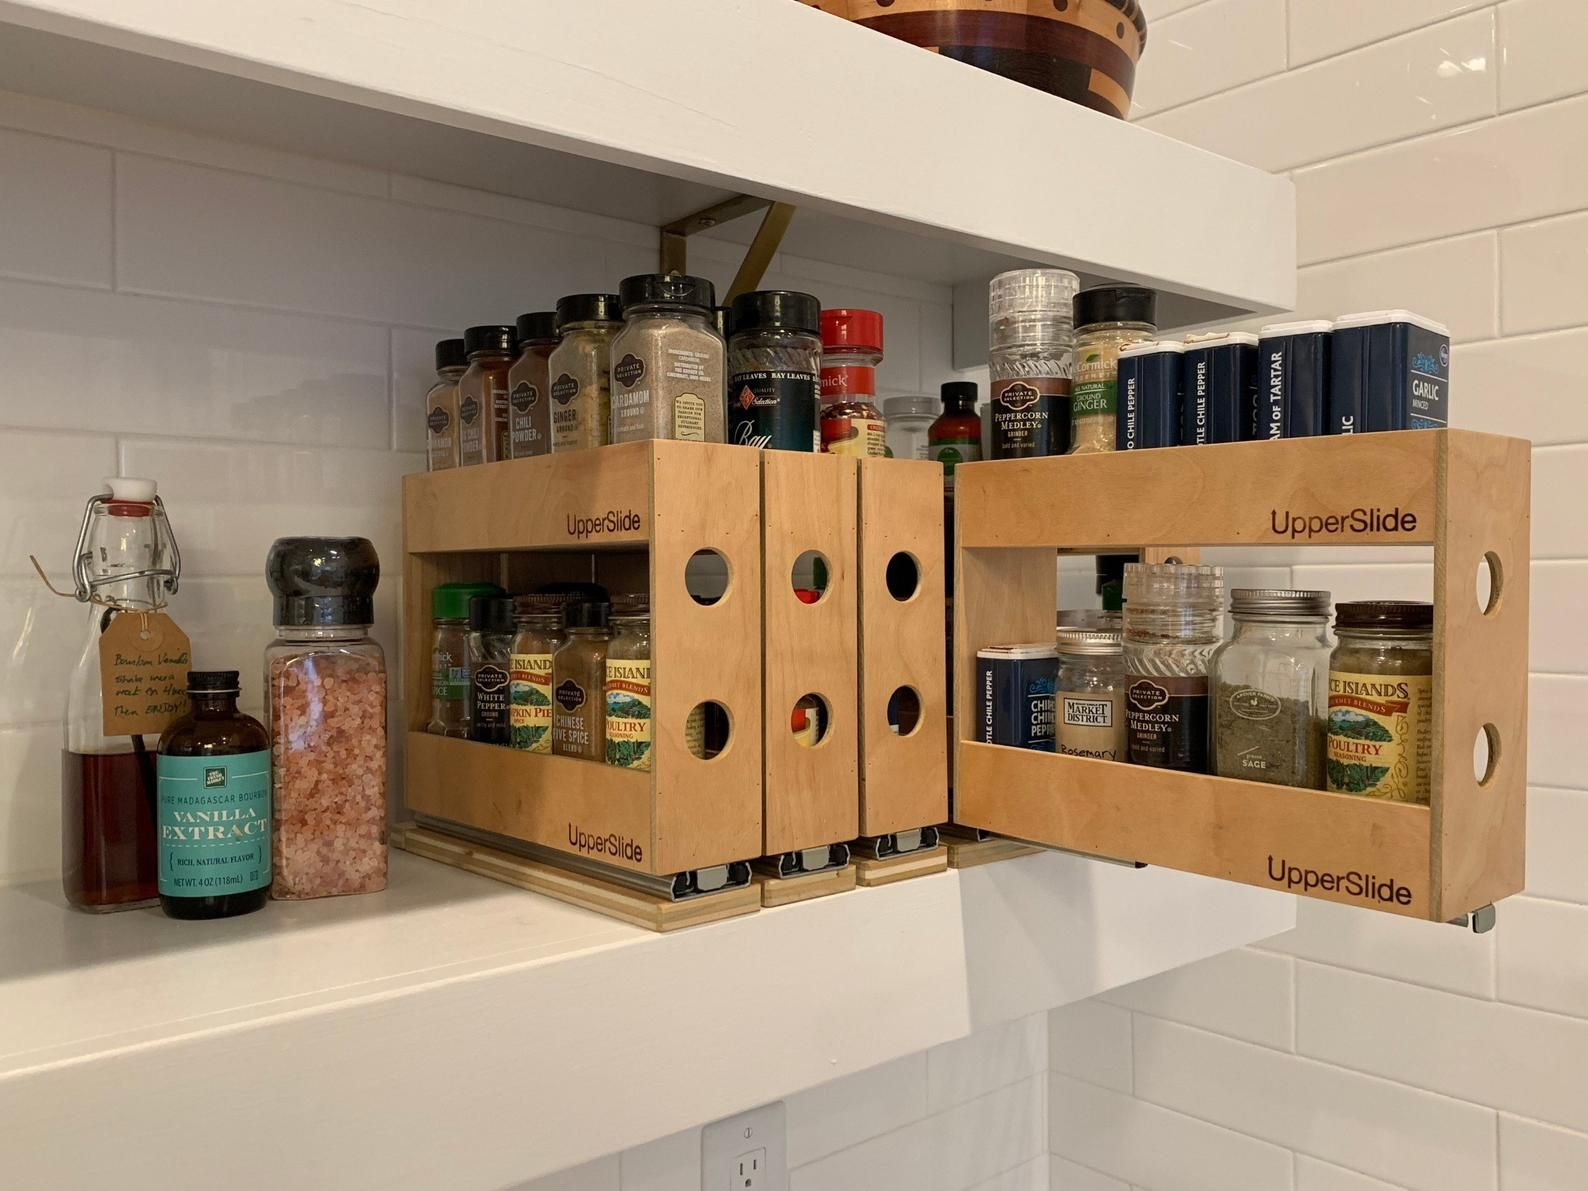 Upperslide Cabinet Caddies Double Pull Out Spice Rack Large Etsy In 2020 Cabinet Spice Rack Spice Rack Pull Out Spice Rack